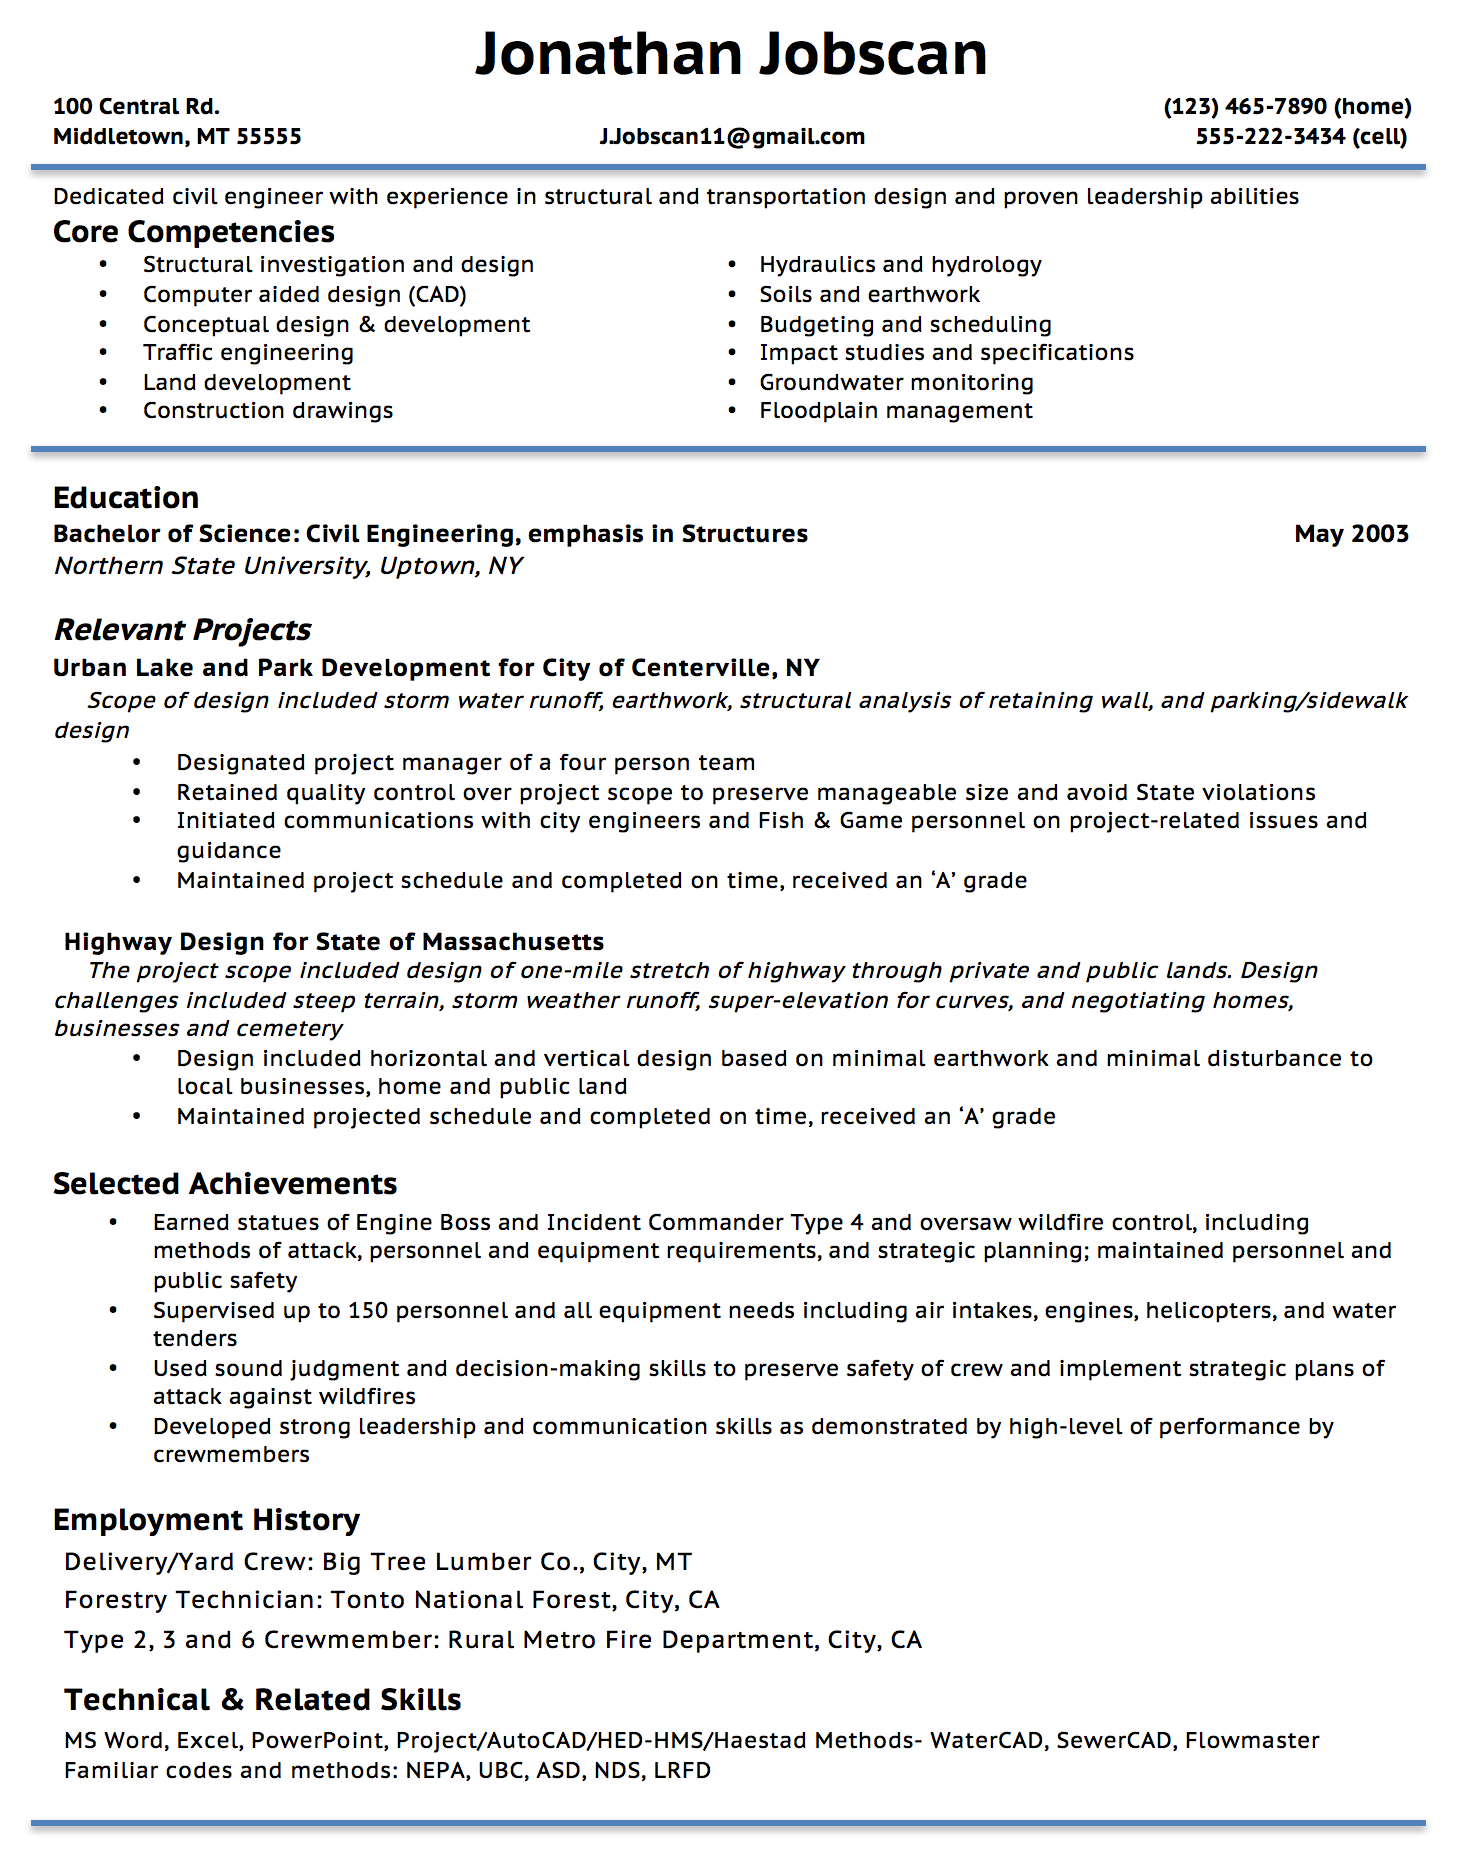 Opposenewapstandardsus  Marvelous Resume Writing Guide  Jobscan With Inspiring Example Of A Functional Resume Format With Attractive How To Build Your Resume Also Soccer Coach Resume In Addition Online Resume Creator And Resume For Child Care As Well As Bus Driver Resume Additionally Excellent Resume Example From Jobscanco With Opposenewapstandardsus  Inspiring Resume Writing Guide  Jobscan With Attractive Example Of A Functional Resume Format And Marvelous How To Build Your Resume Also Soccer Coach Resume In Addition Online Resume Creator From Jobscanco